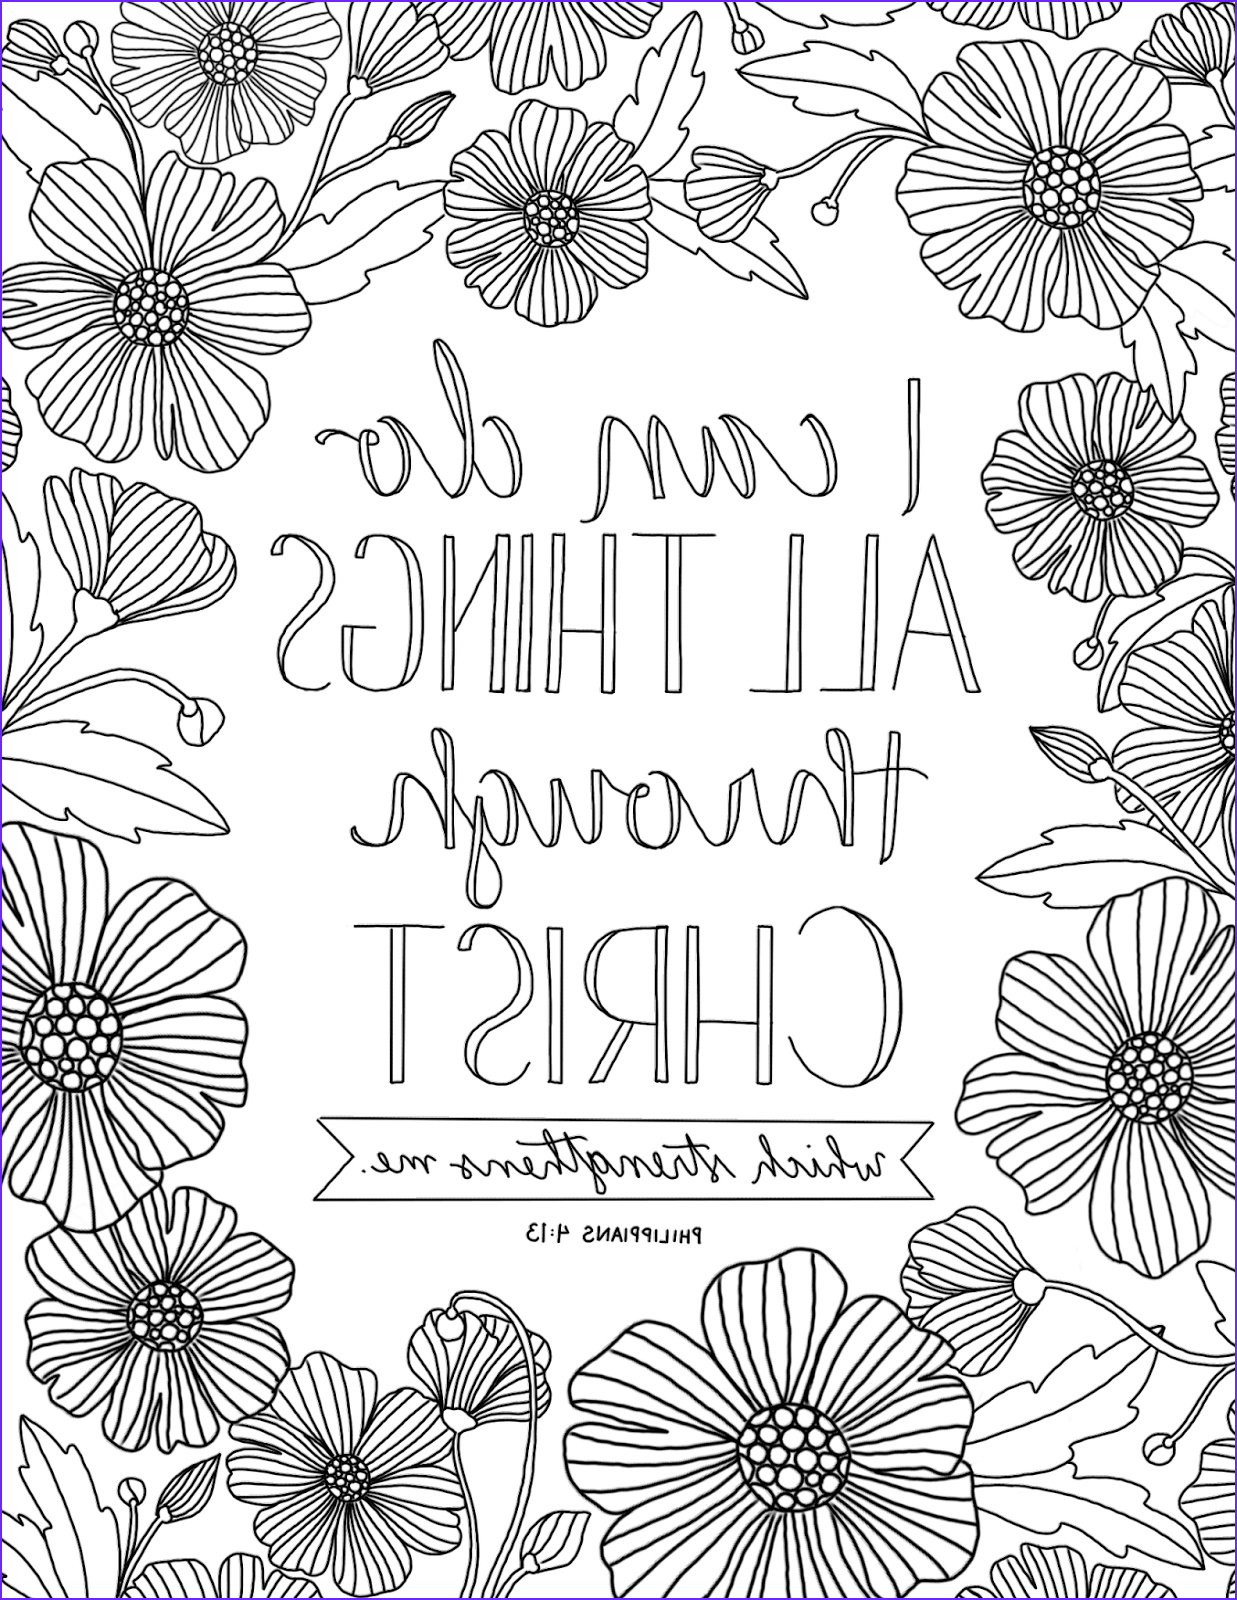 Scripture Coloring Pages for Adults Cool Images Just What I Squeeze In All Things Through Christ